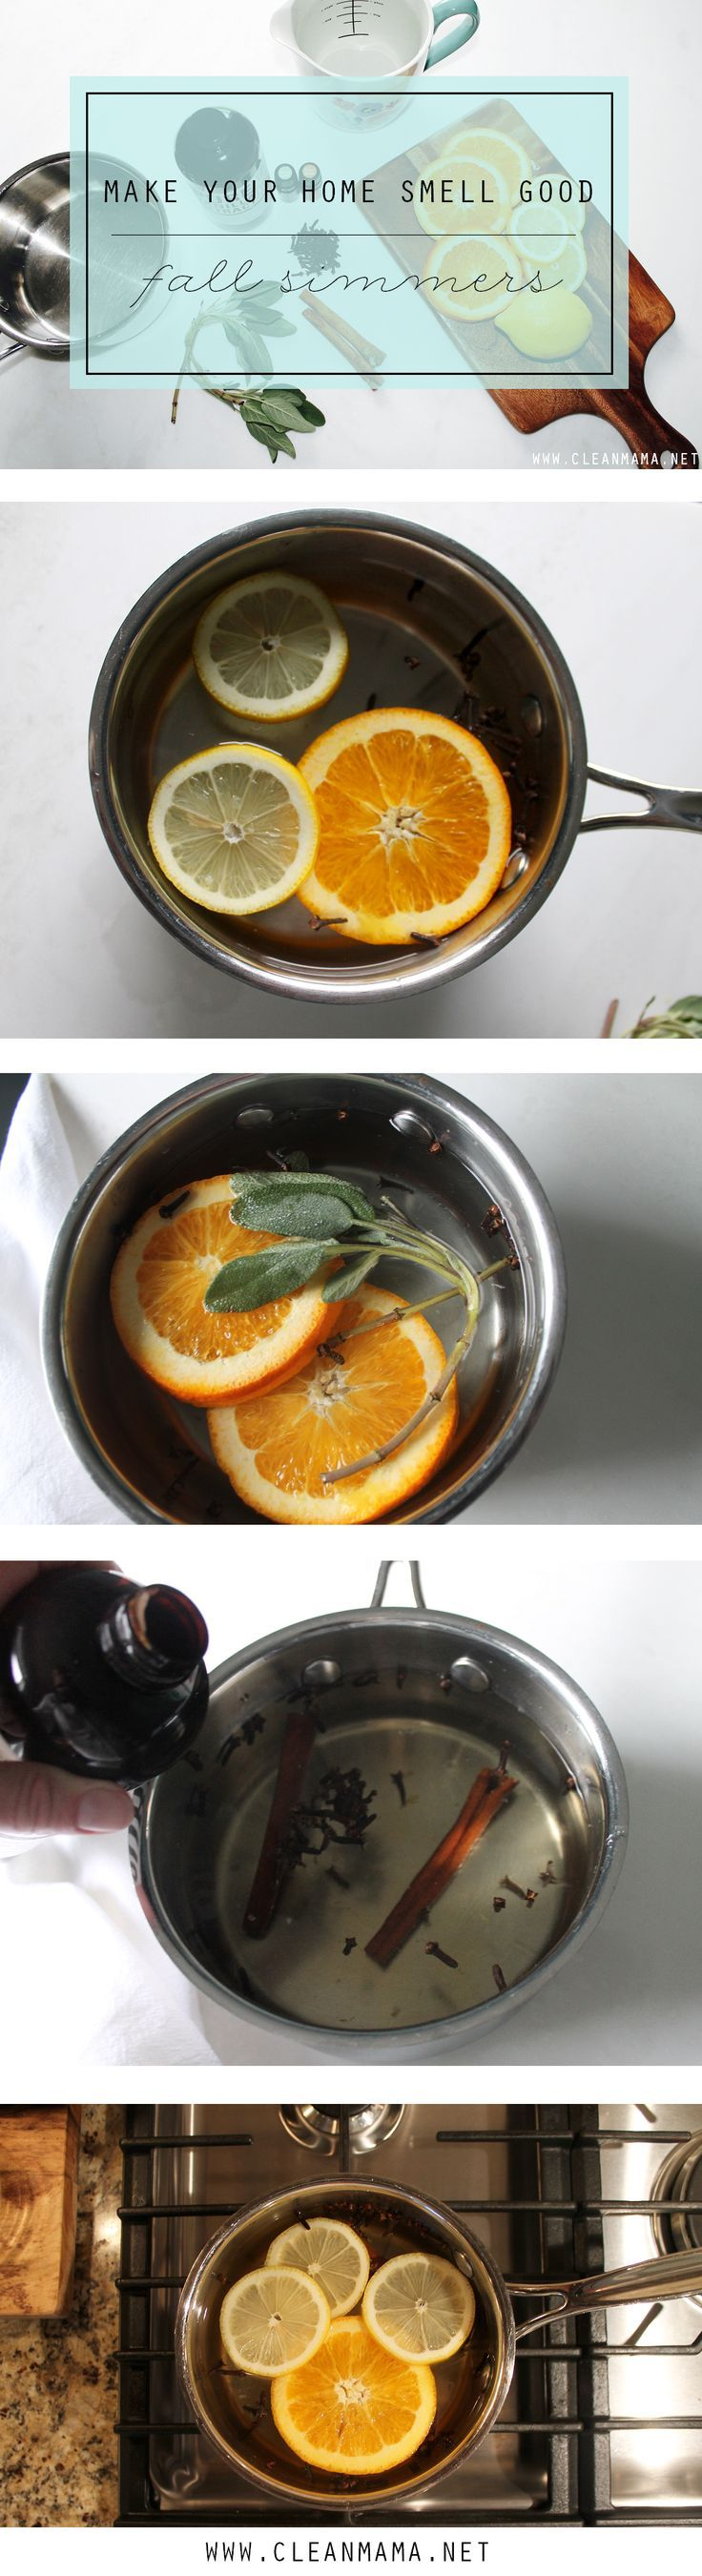 Scent Your Home Naturally With These Deliciously Scented Simmers Make Smell Good 3 Fall Via Clean Mama